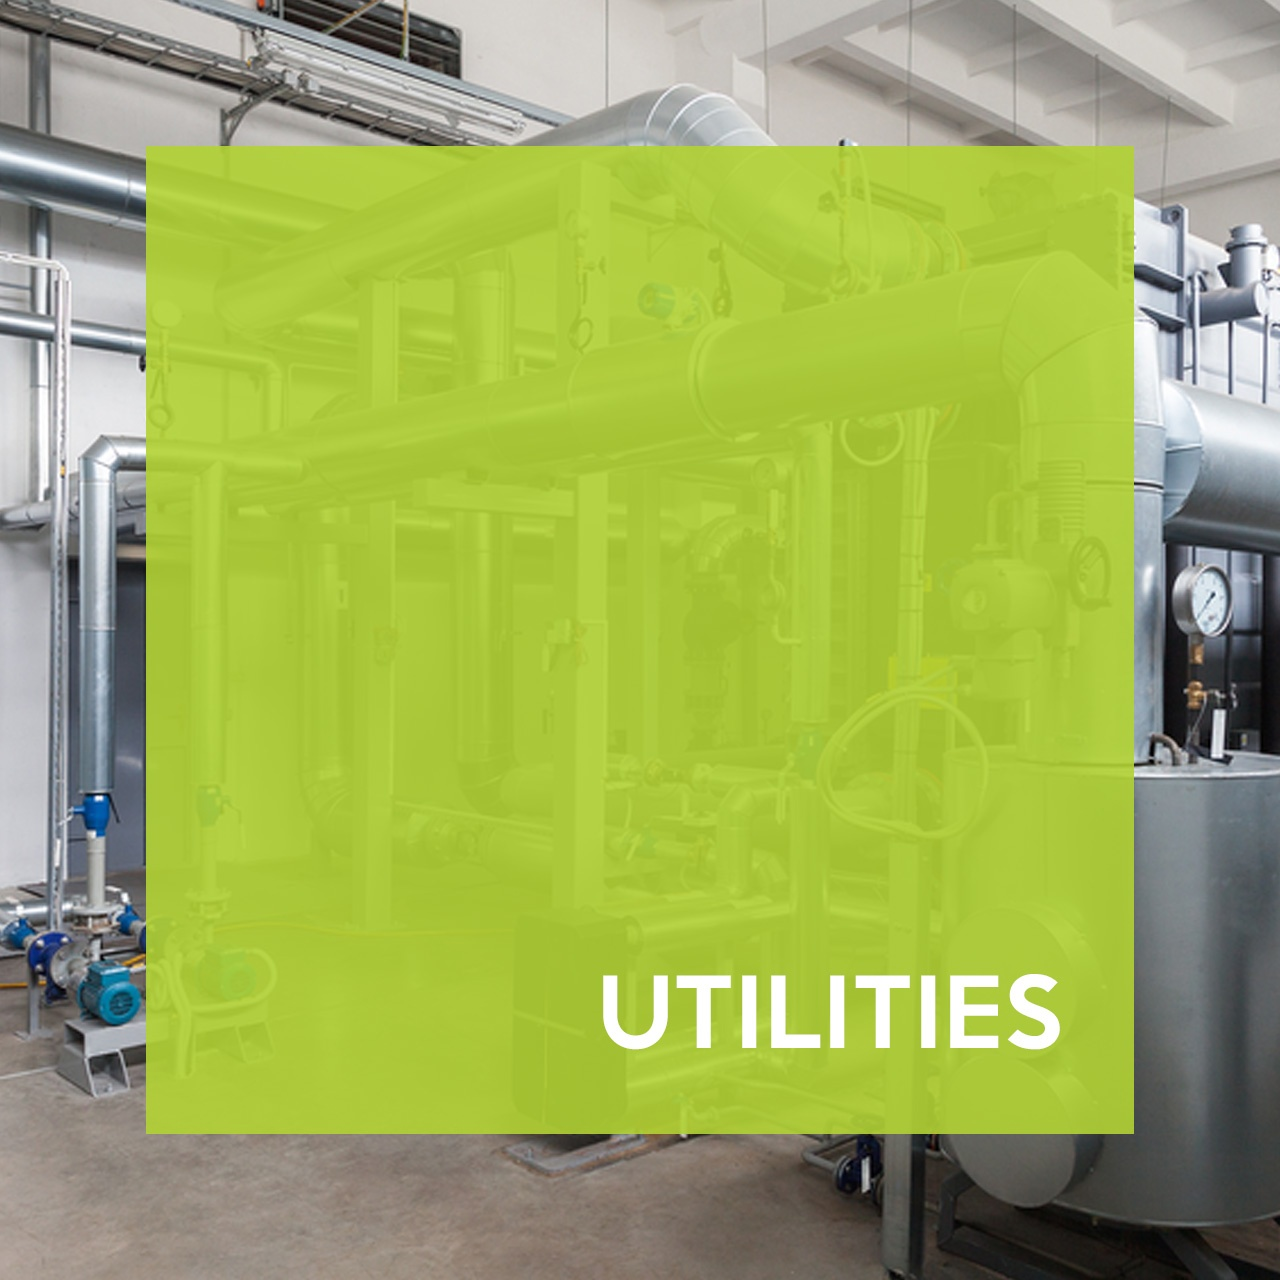 ami_commercial__utilities_-_018.jpg